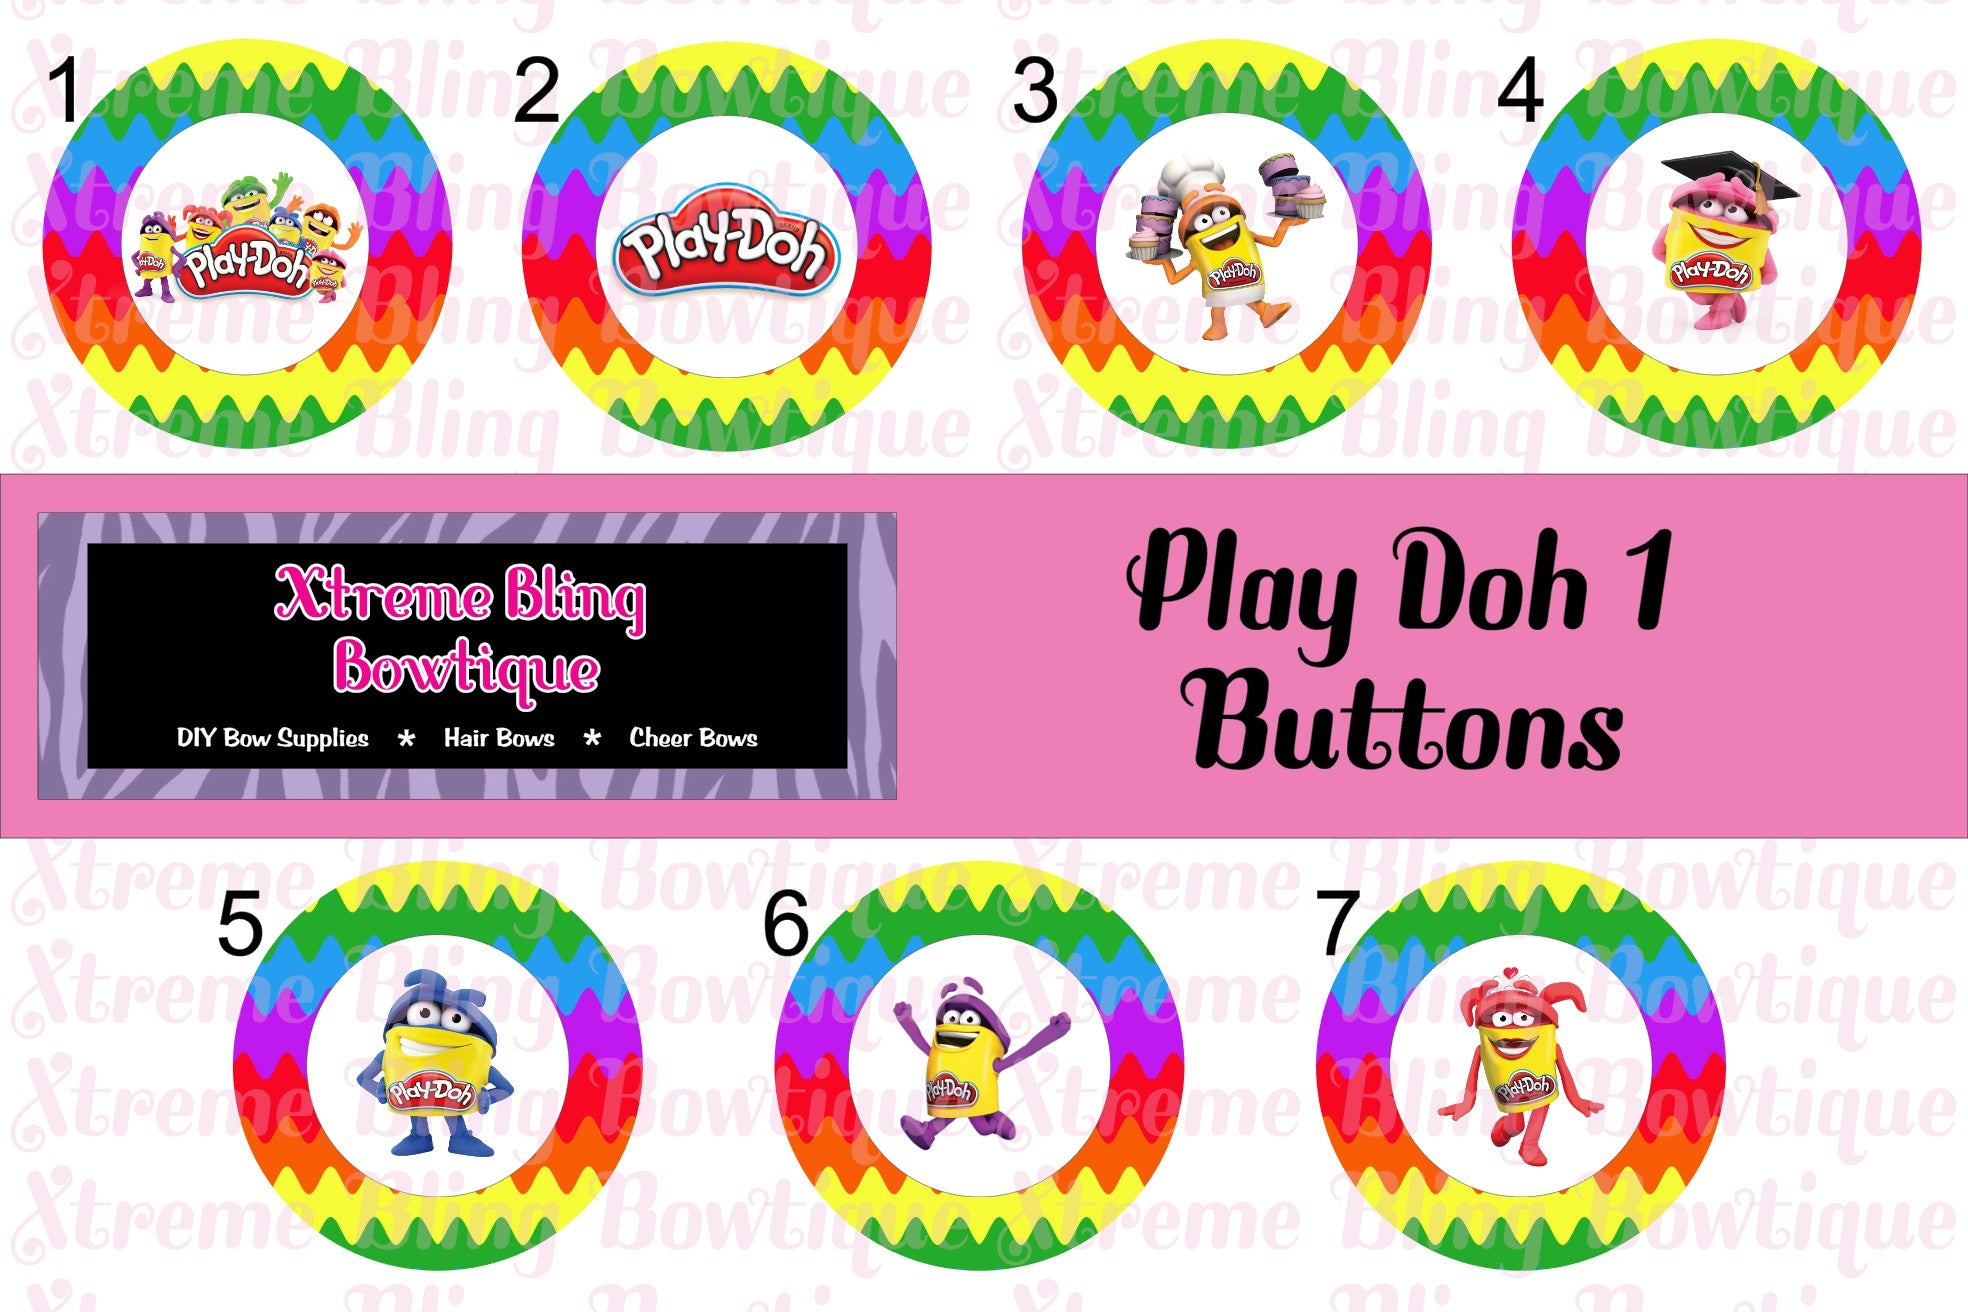 Play-Doh 1 Button Flat Back, Pin Back, Magnet or Bottle Cap